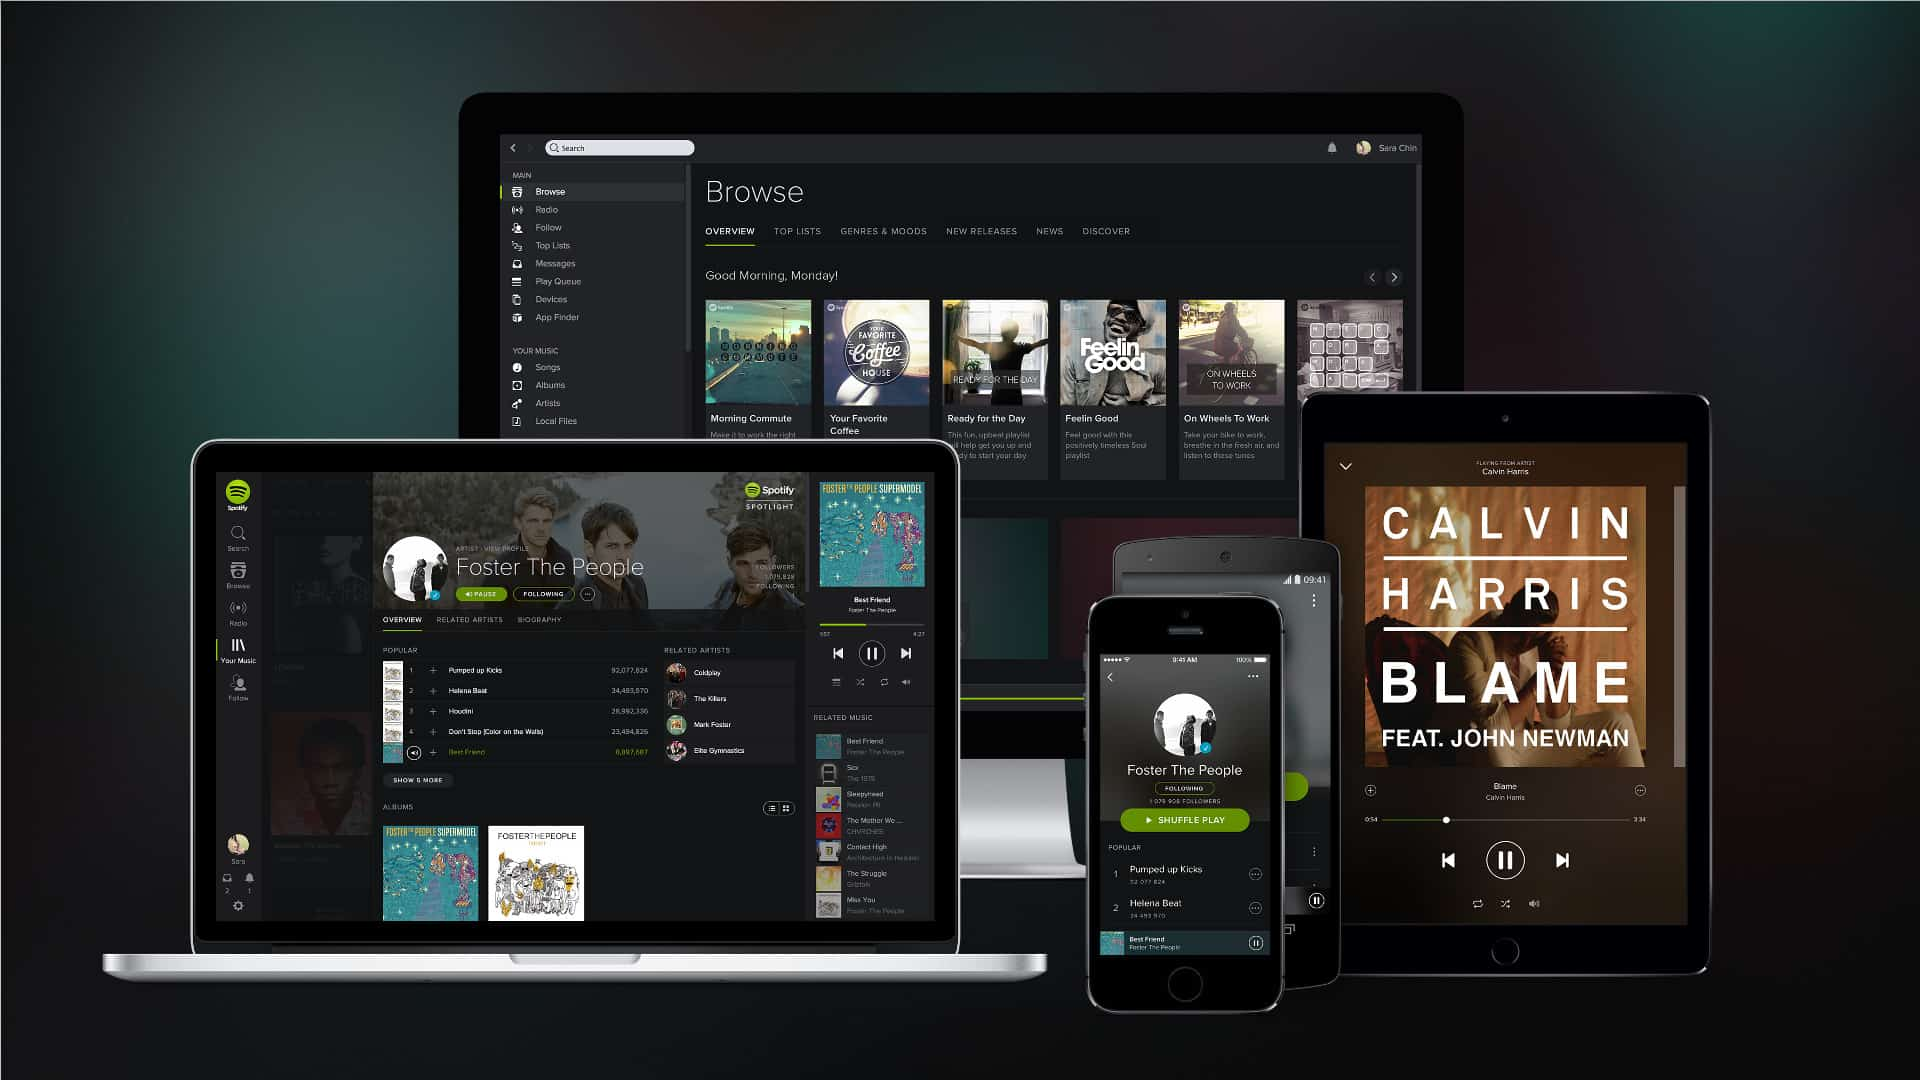 Spotify to Launch Service in Israel Monday, Report Says